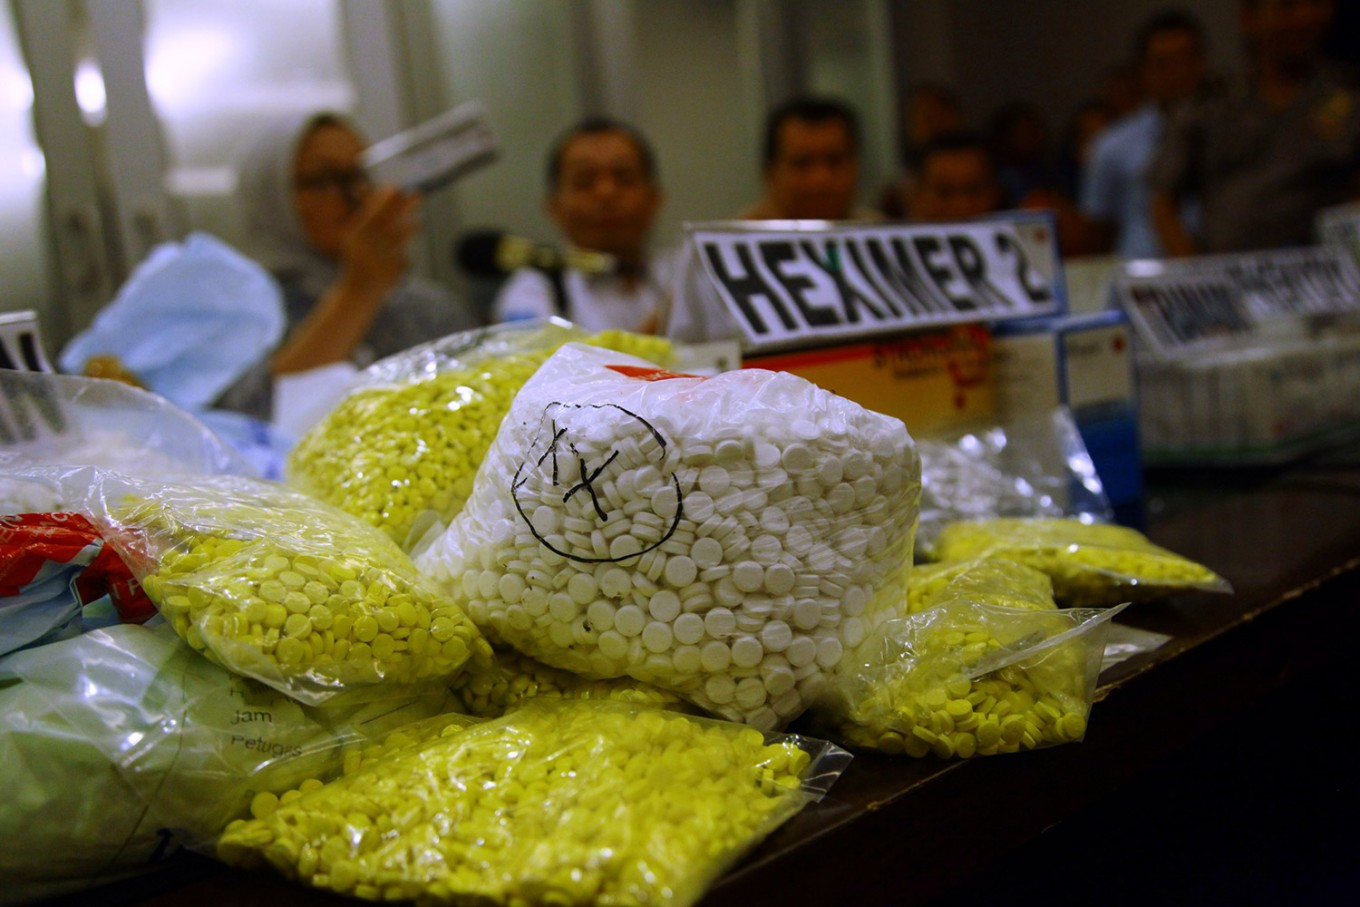 Buddhist monk in Thailand arrested with 88,000 meth pills